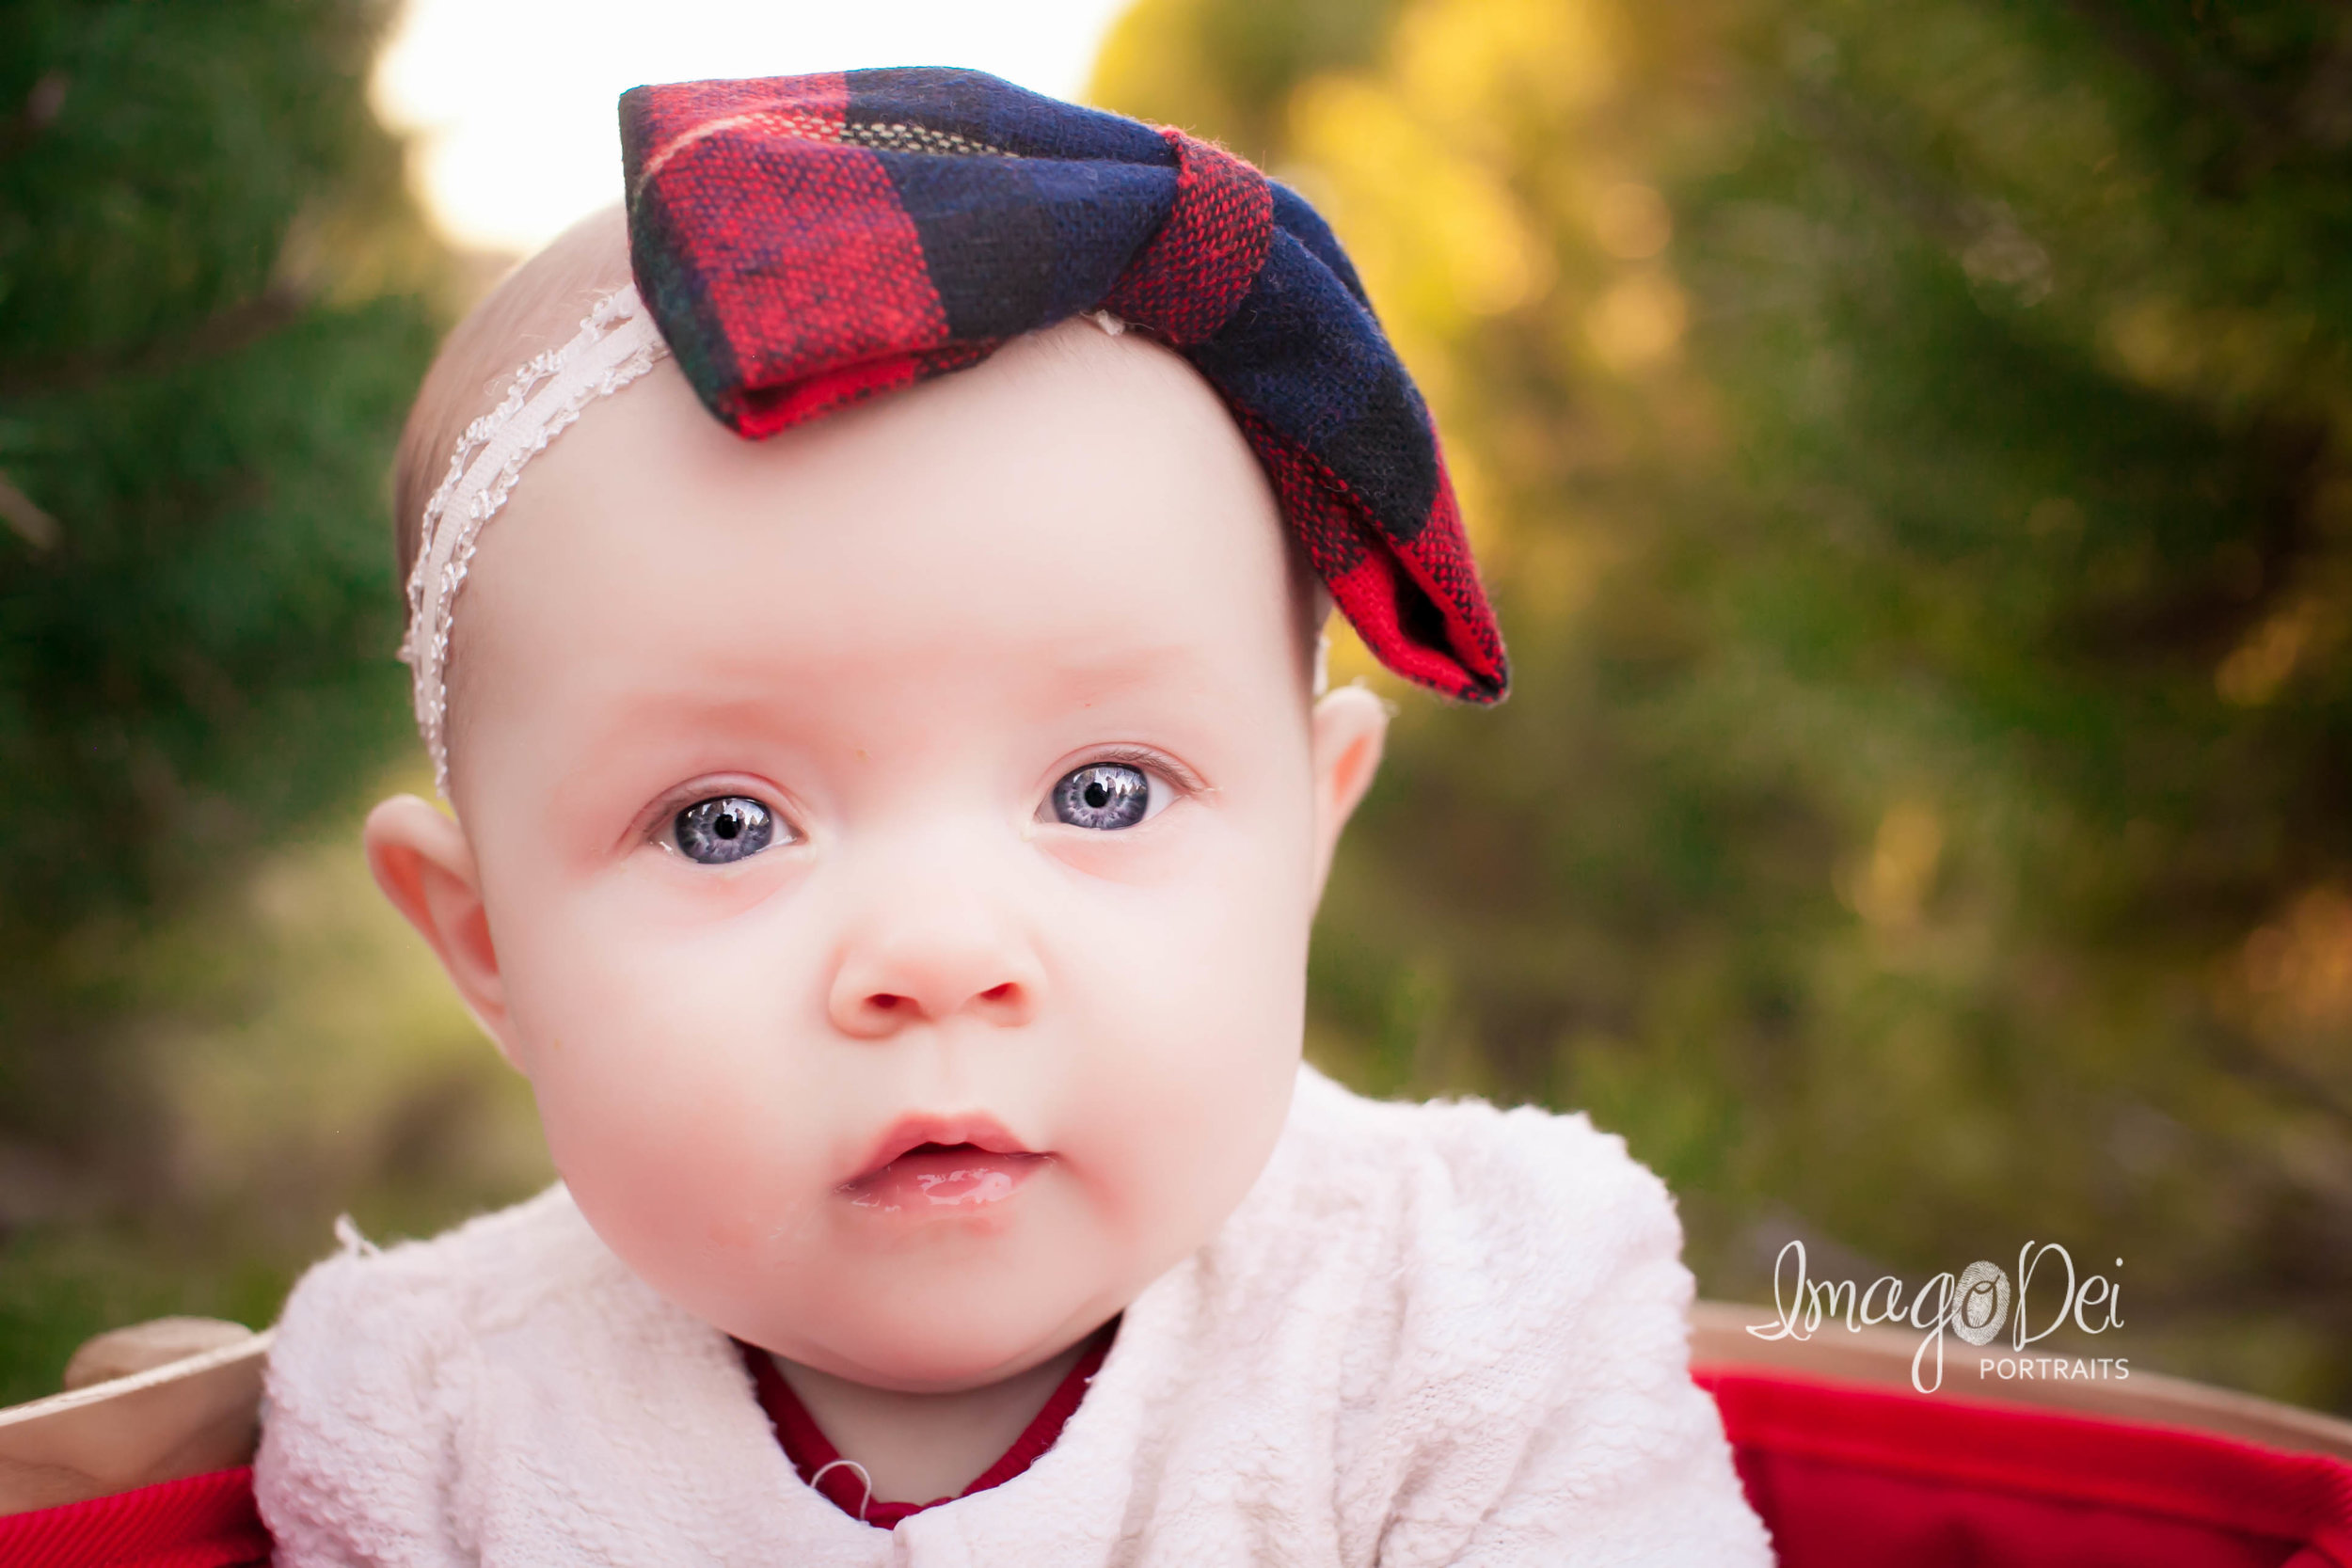 "- ""Crystal did such a wonderful job working with our family! She is so personable and relaxed. She got some amazing shots of our almost 4 month old baby girl. We will definitely be using Imago Dei again in the future!""-Kristen A"